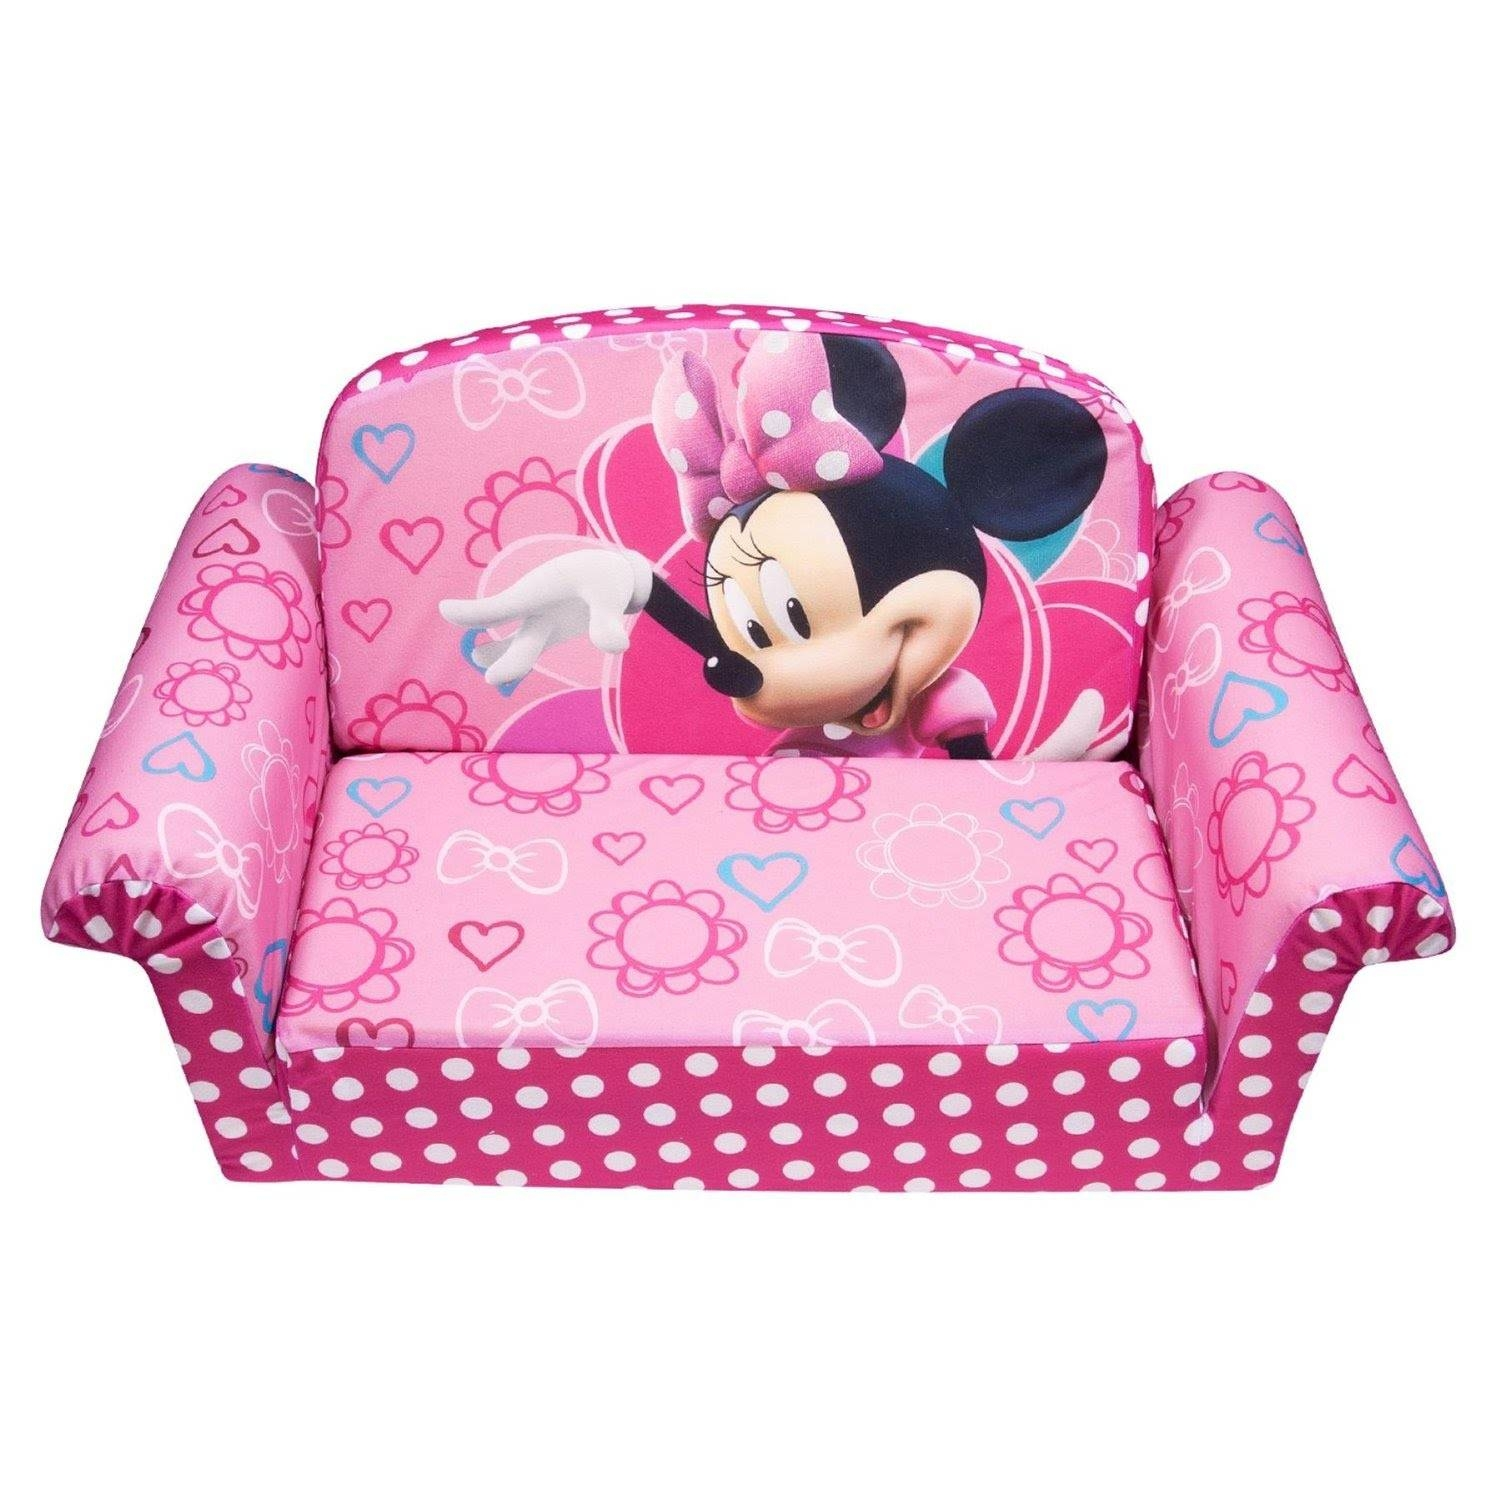 Review: Marshmallow Children's Furniture - 2 In 1 Flip Open Sofa pertaining to Disney Sofa Chairs (Image 12 of 15)